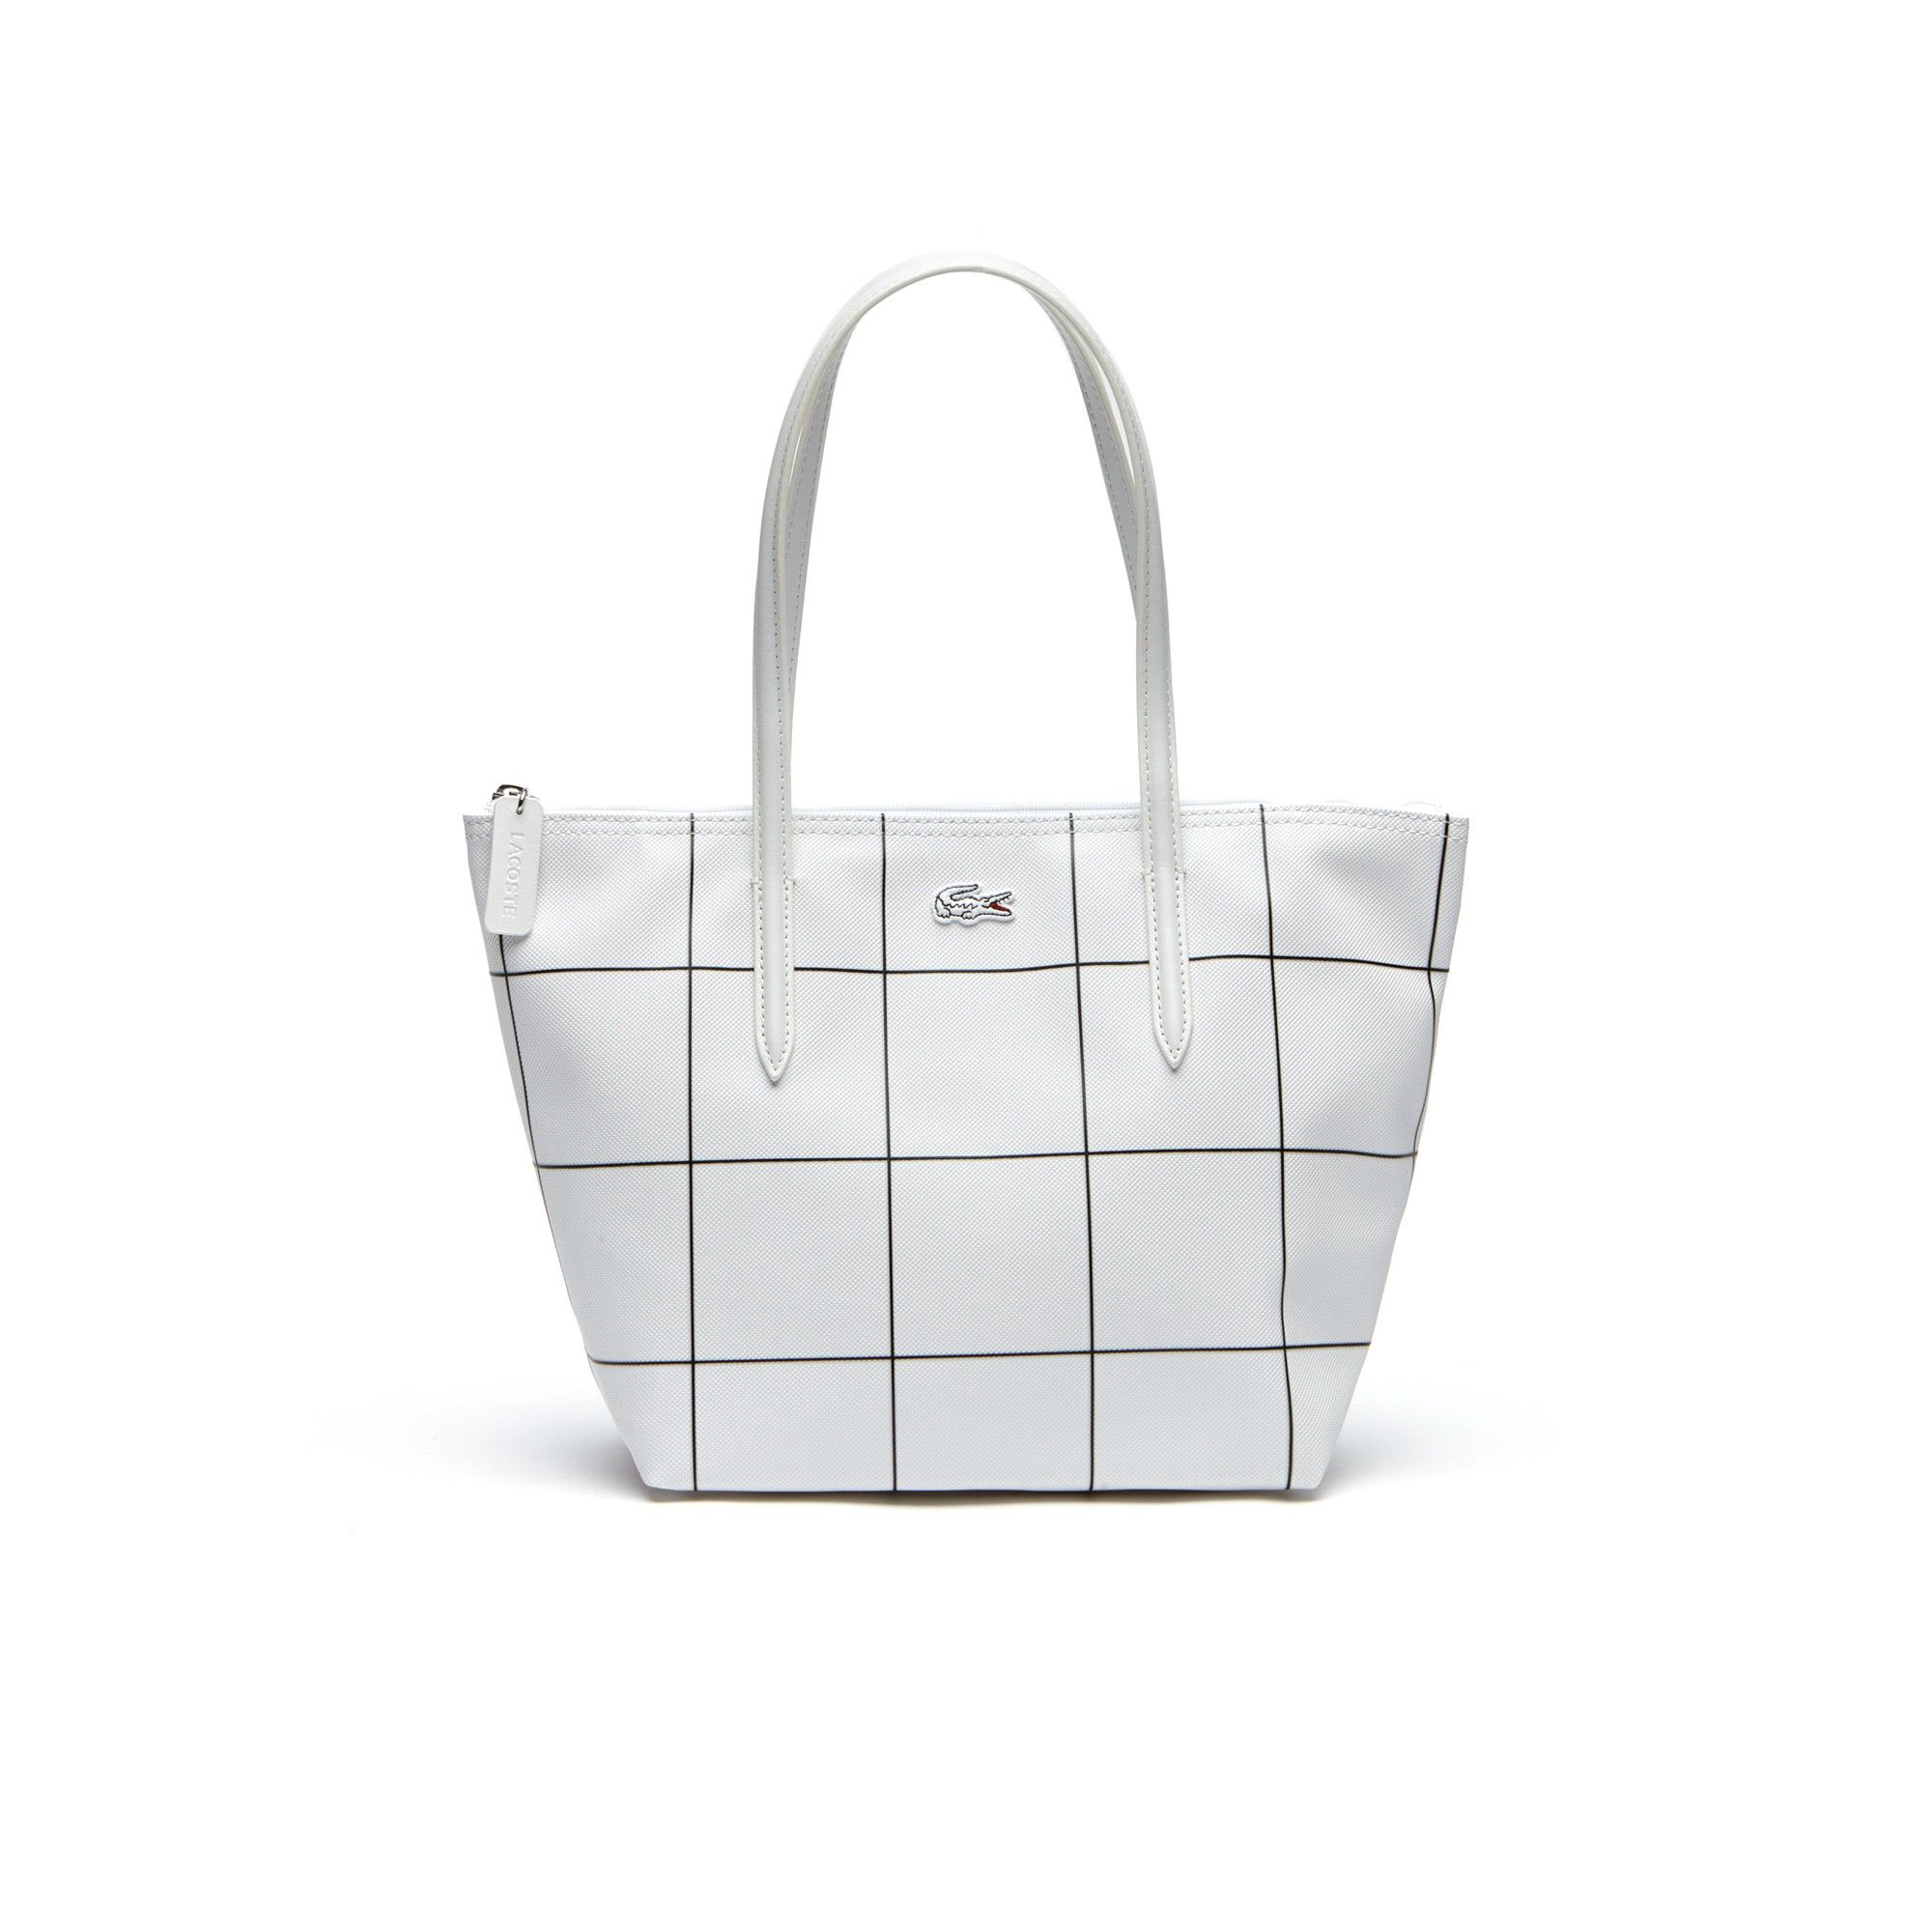 690914942c LACOSTE Women's L.12.12 Concept White Squares Small Zip Tote Bag. #lacoste  #bags #hand bags #pvc #tote #